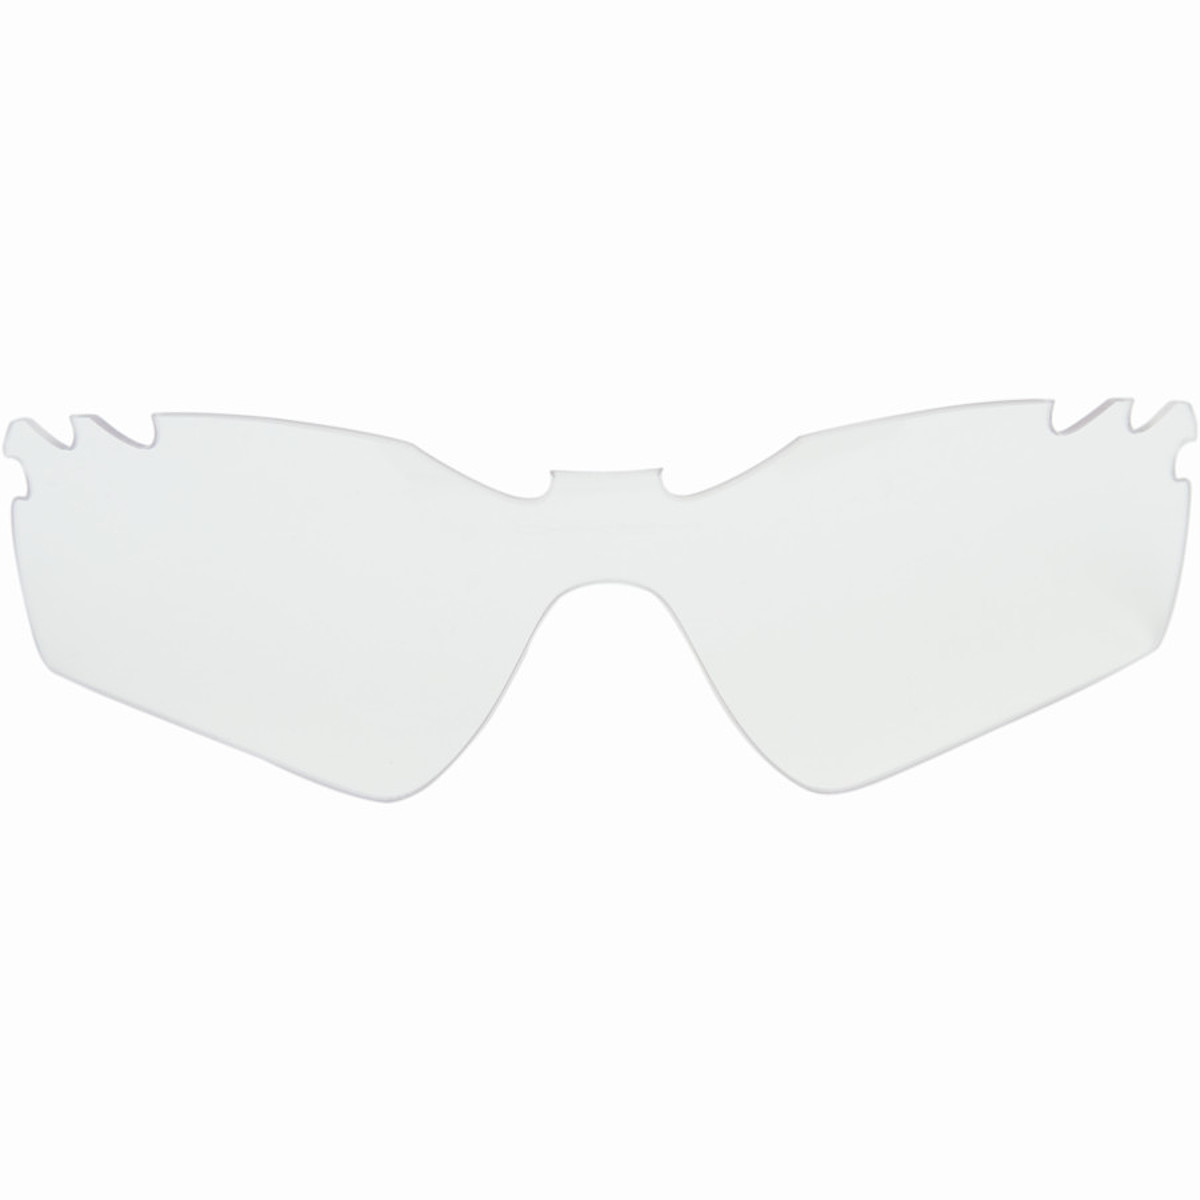 photo: Oakley Radar Path Accessory Lenses sunglass lens